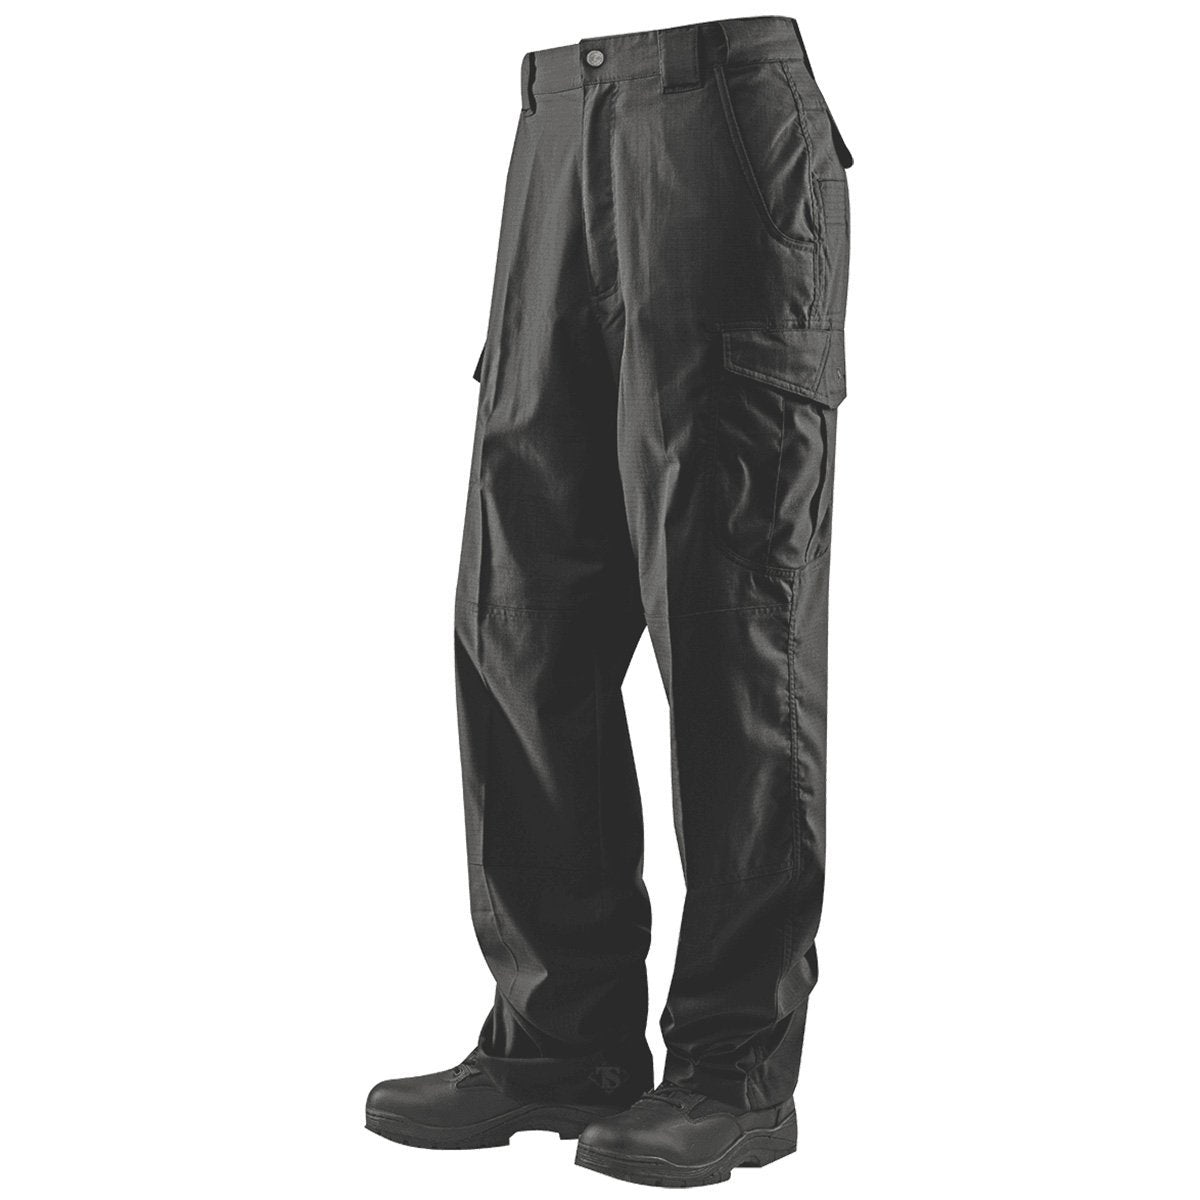 Tru-Spec 24-7 Ascent Tactical Trousers | UKMCPro